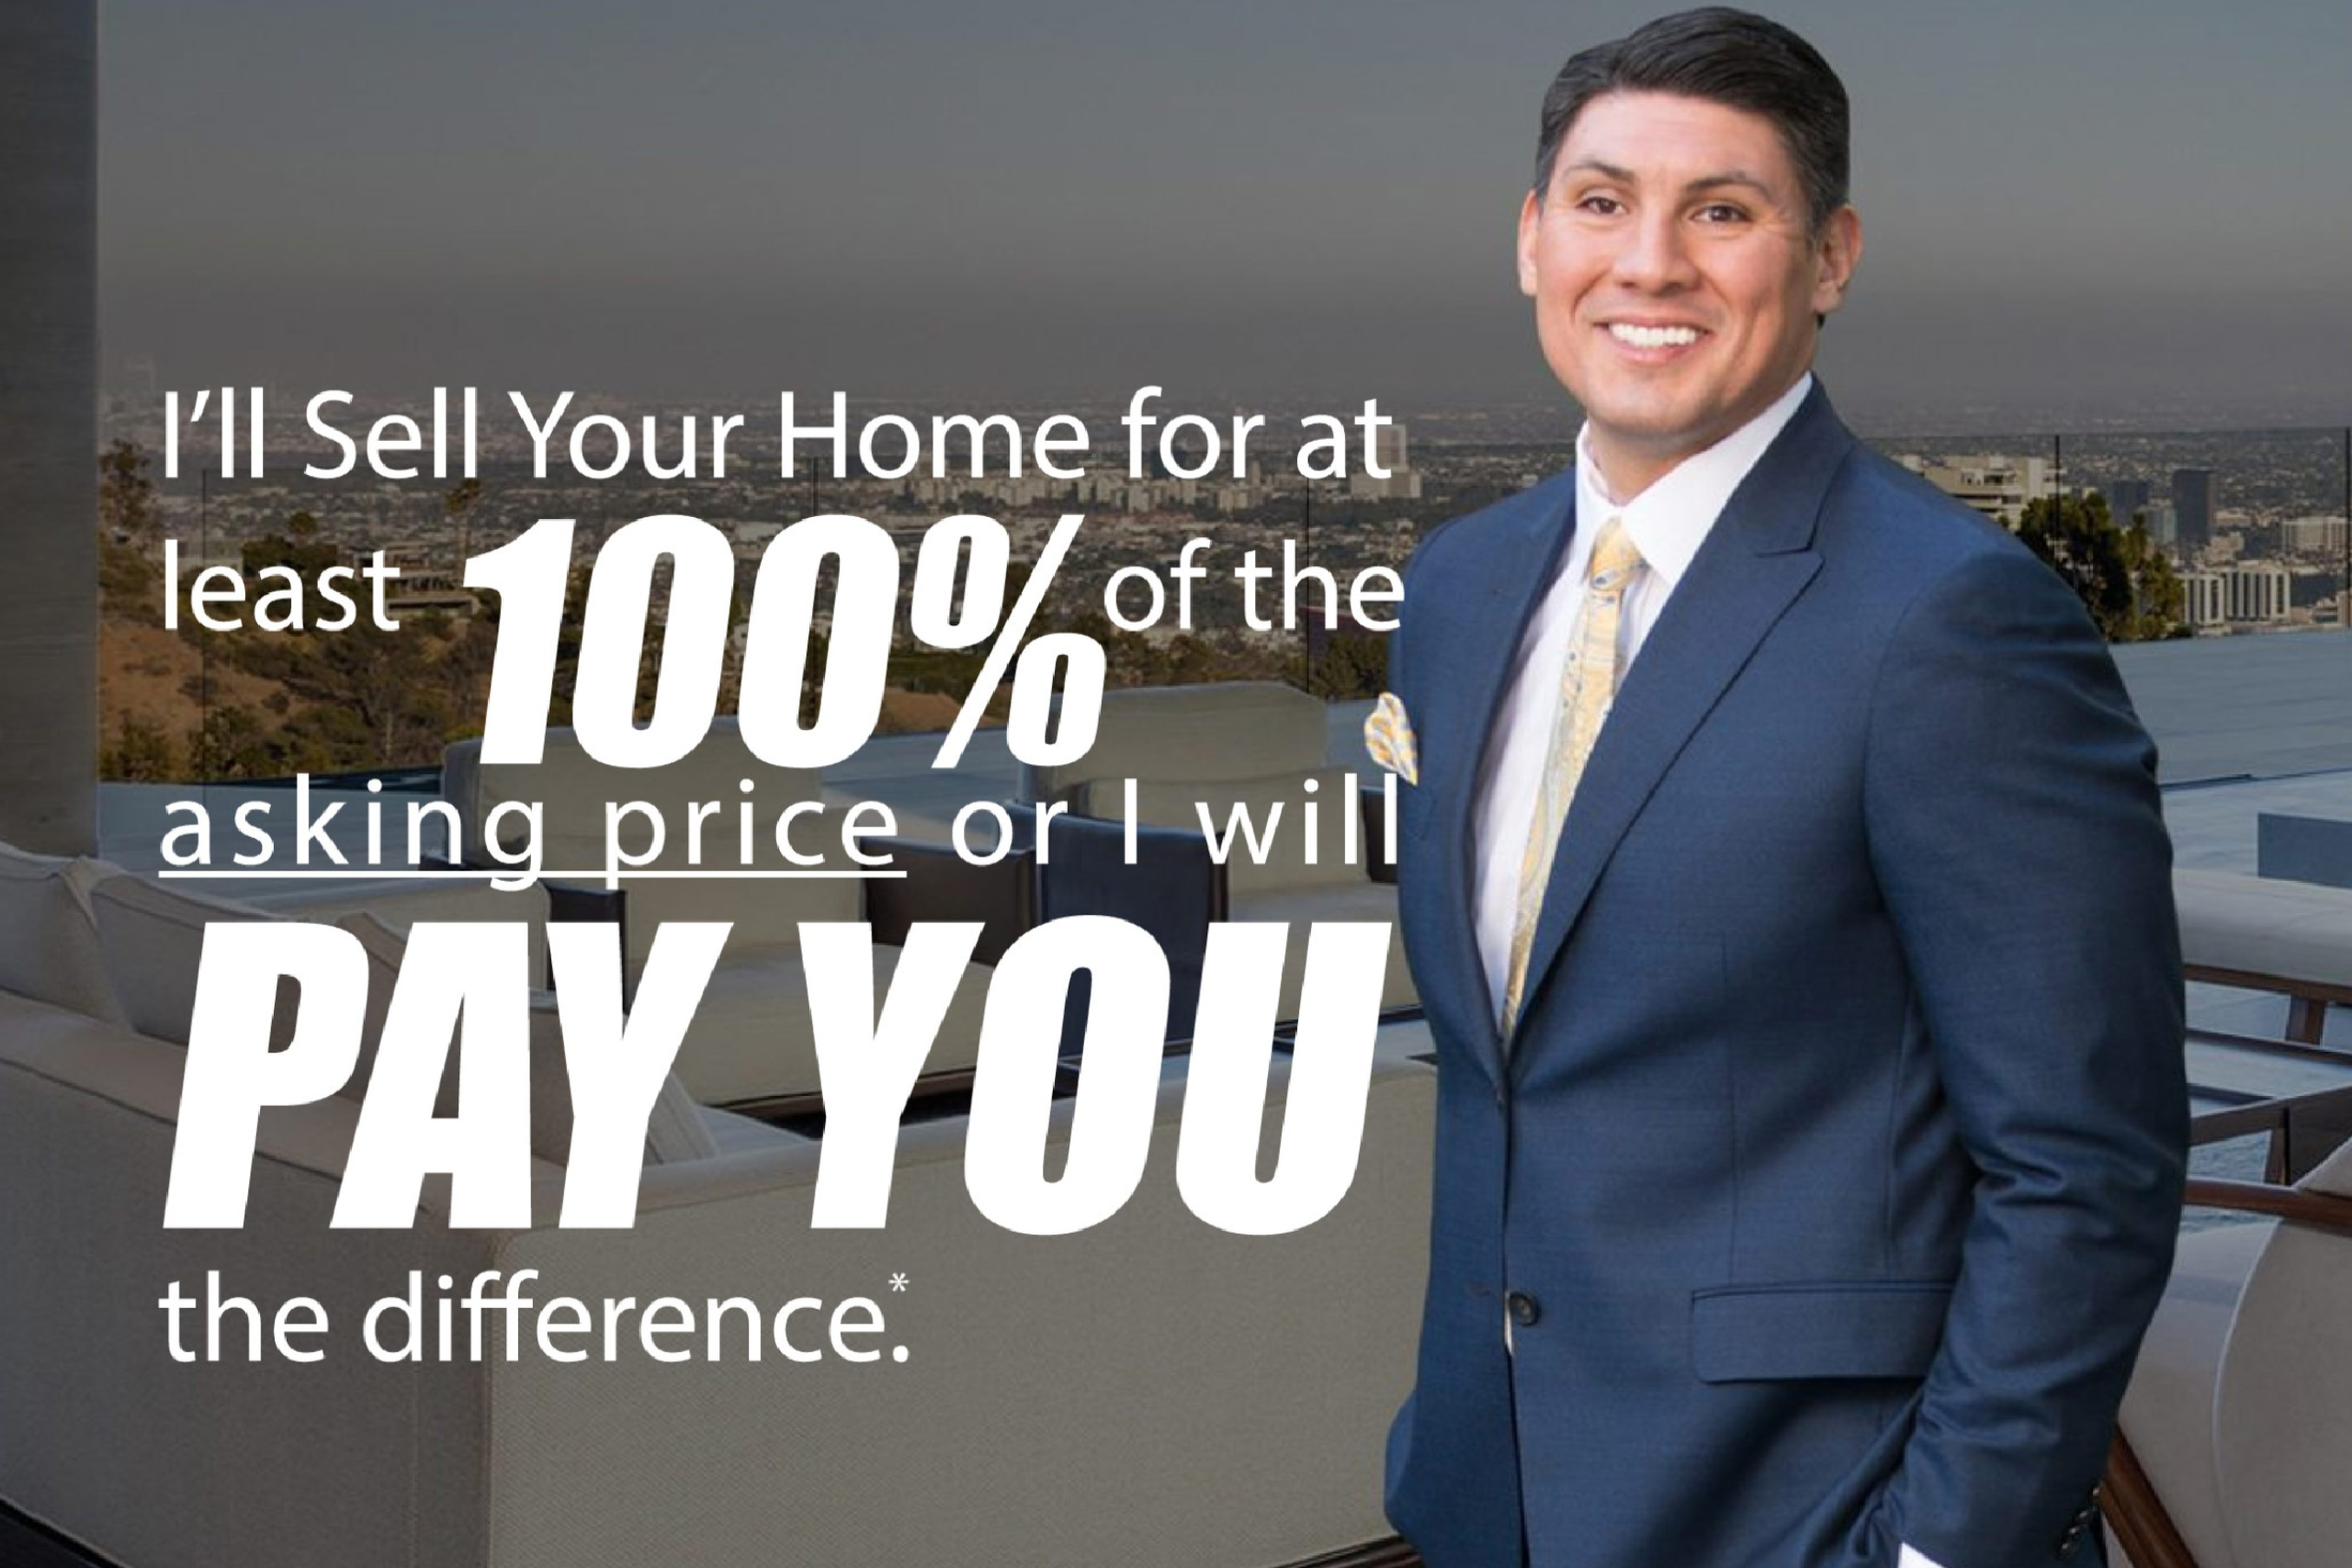 I'll Sell Your Home for at least 100% of Asking Price OR I'll Pay You the Difference! Best real estate agent in los angeles best realtor in los angeles celebrity real estate agent luxury real estate agent pro athlete relocation corporate relocation worldwide relocation global mobility arcadia real estate agent arcadia realtor best real estate agent in arcadia best realtor in arcadia arcadia homes for sale arcadia real estate market